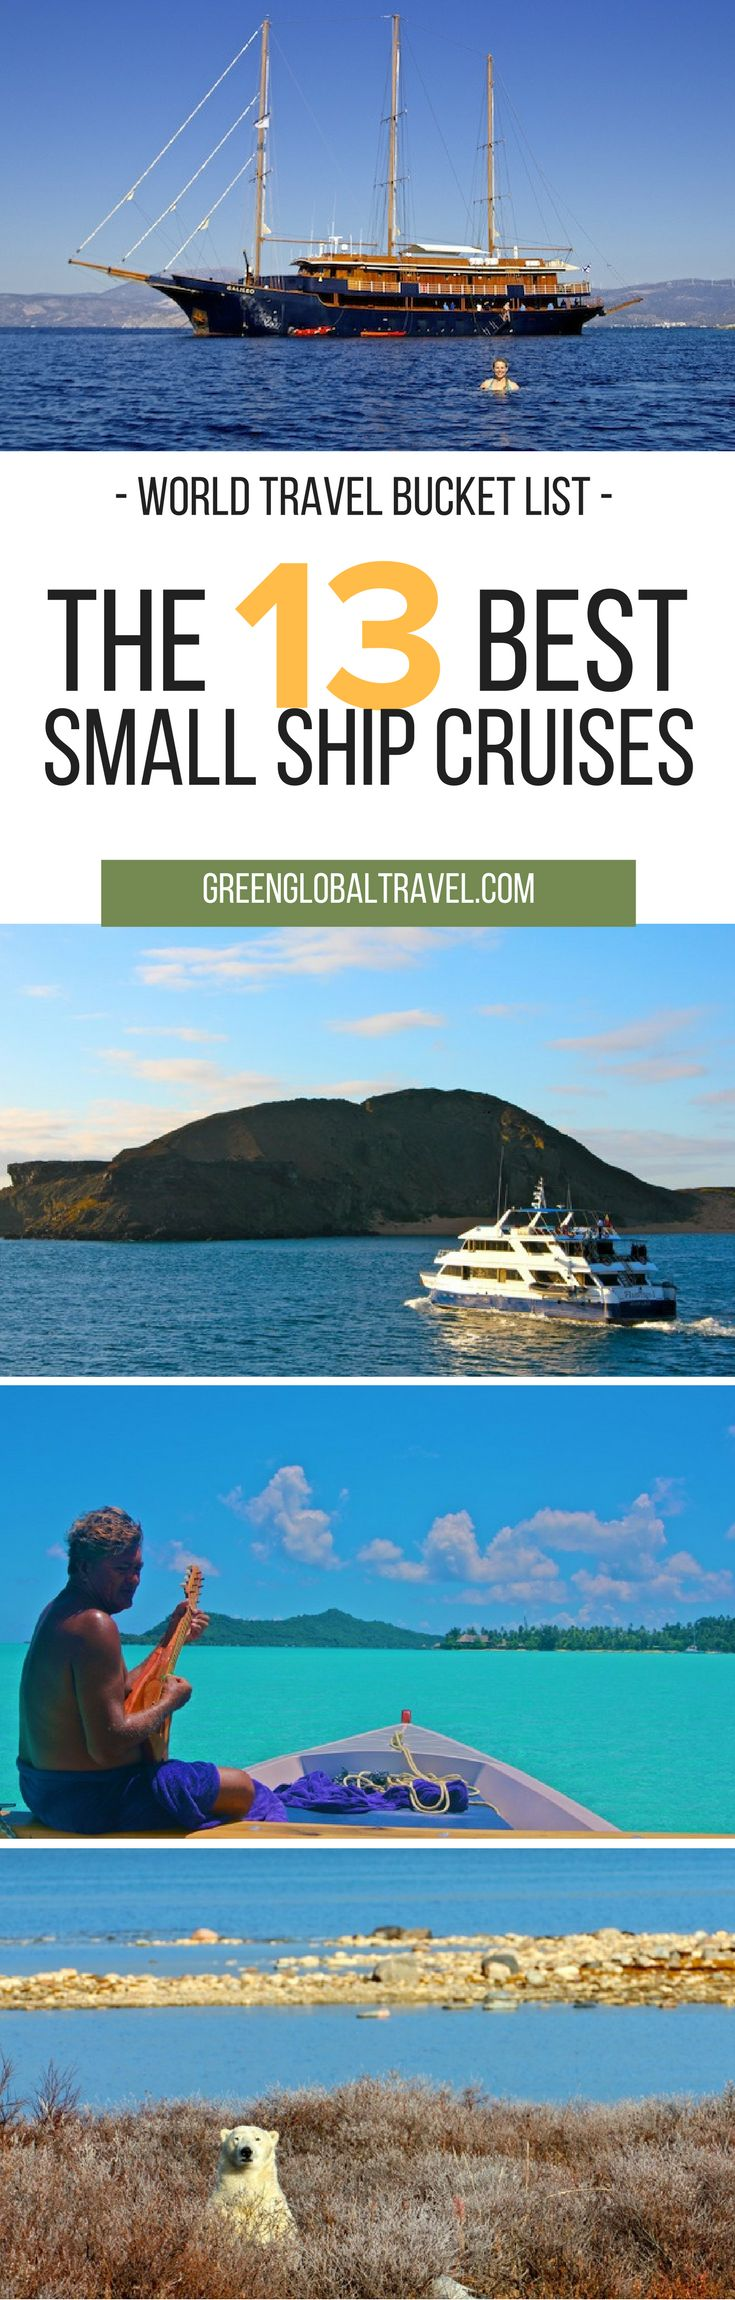 Best Small Ship Cruises Ideas On Pinterest Luxury Cruise - Best small cruise ships caribbean